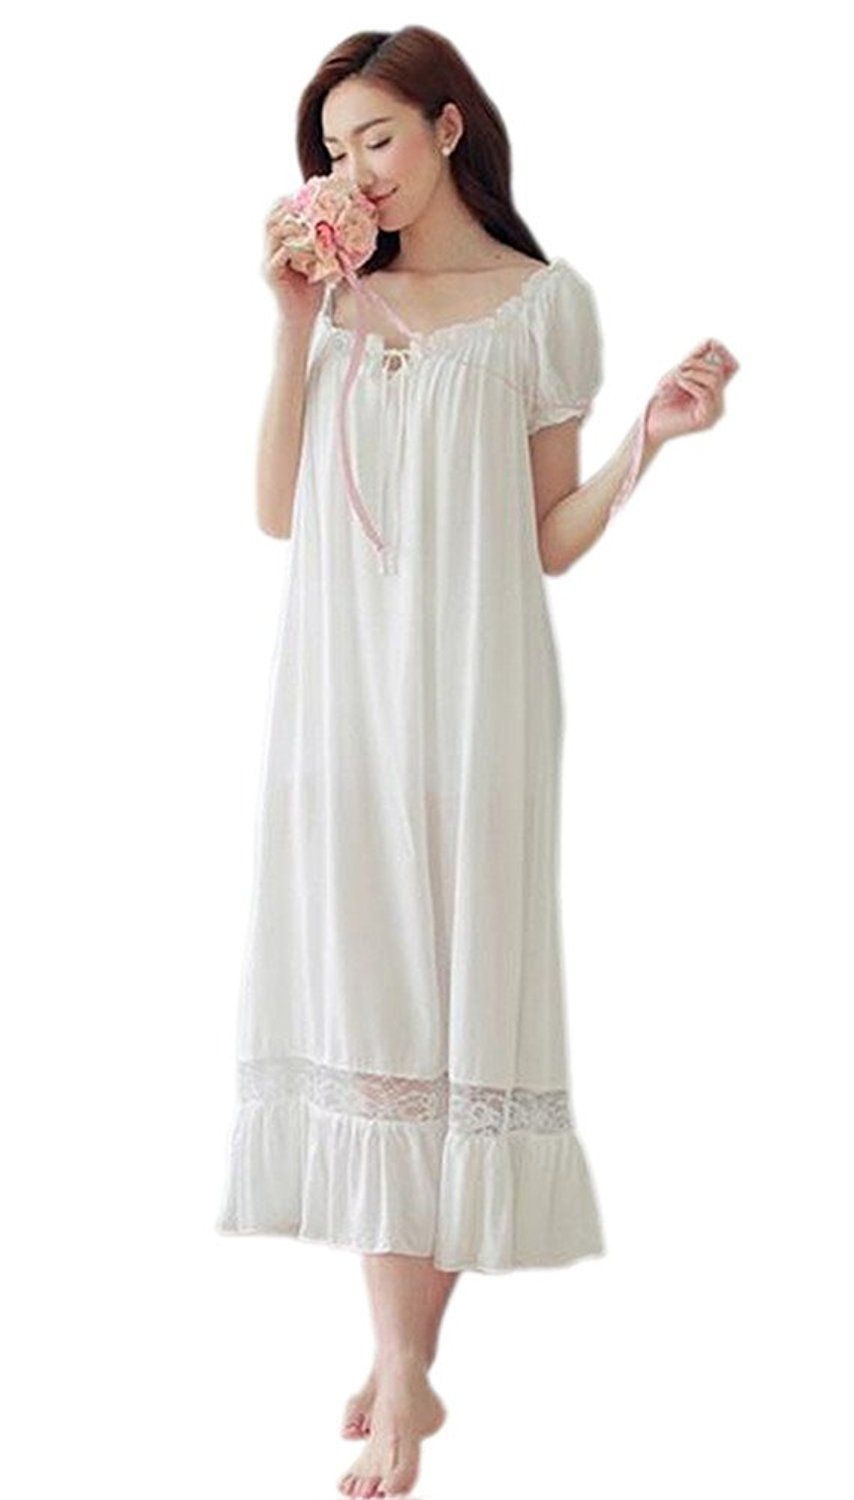 Women 100% Cotton Vintage Short Sleeve Princess Long Nightgowns (L ... b46c1236a